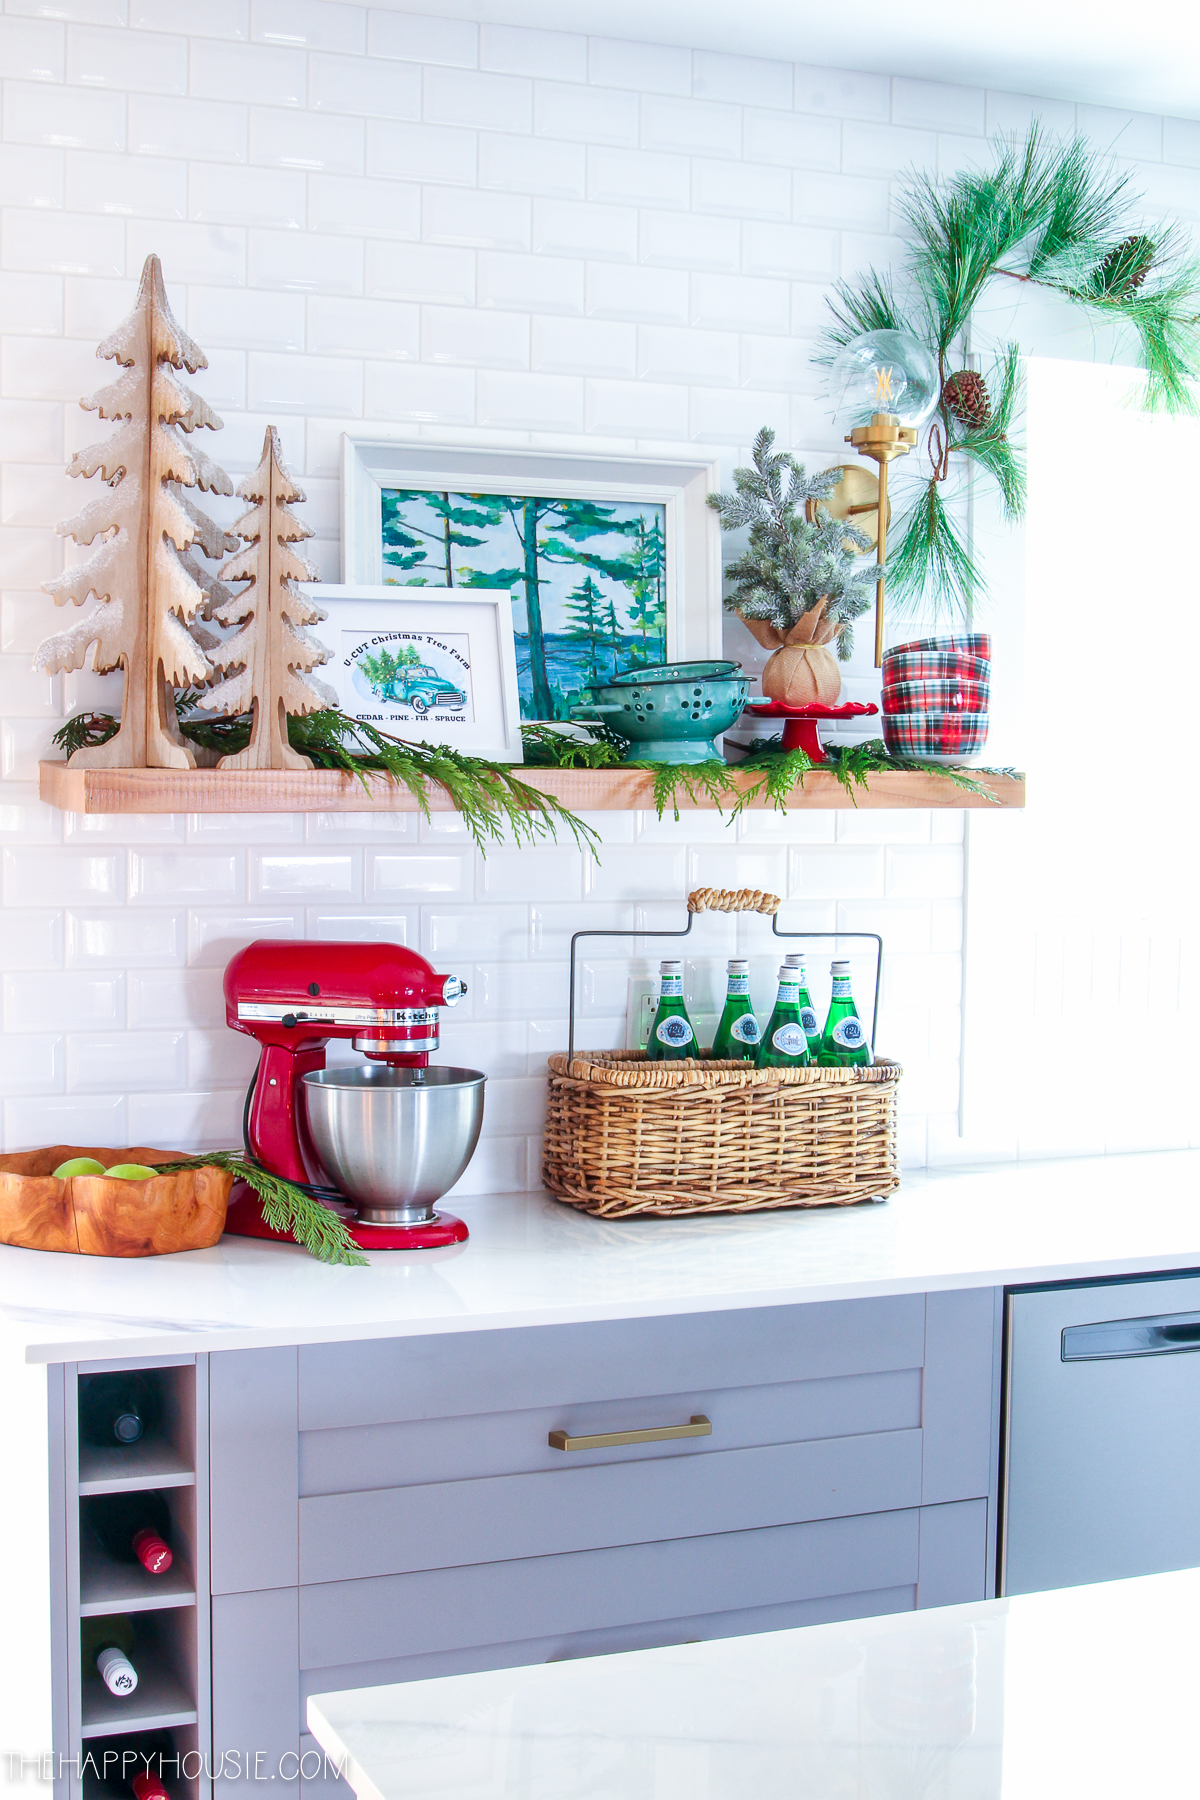 Love this cheery Christmas kitchen #christmasdecor #christmaskitchen #kitchenshelves #subwaytile #kitchenbacksplash #openshelves